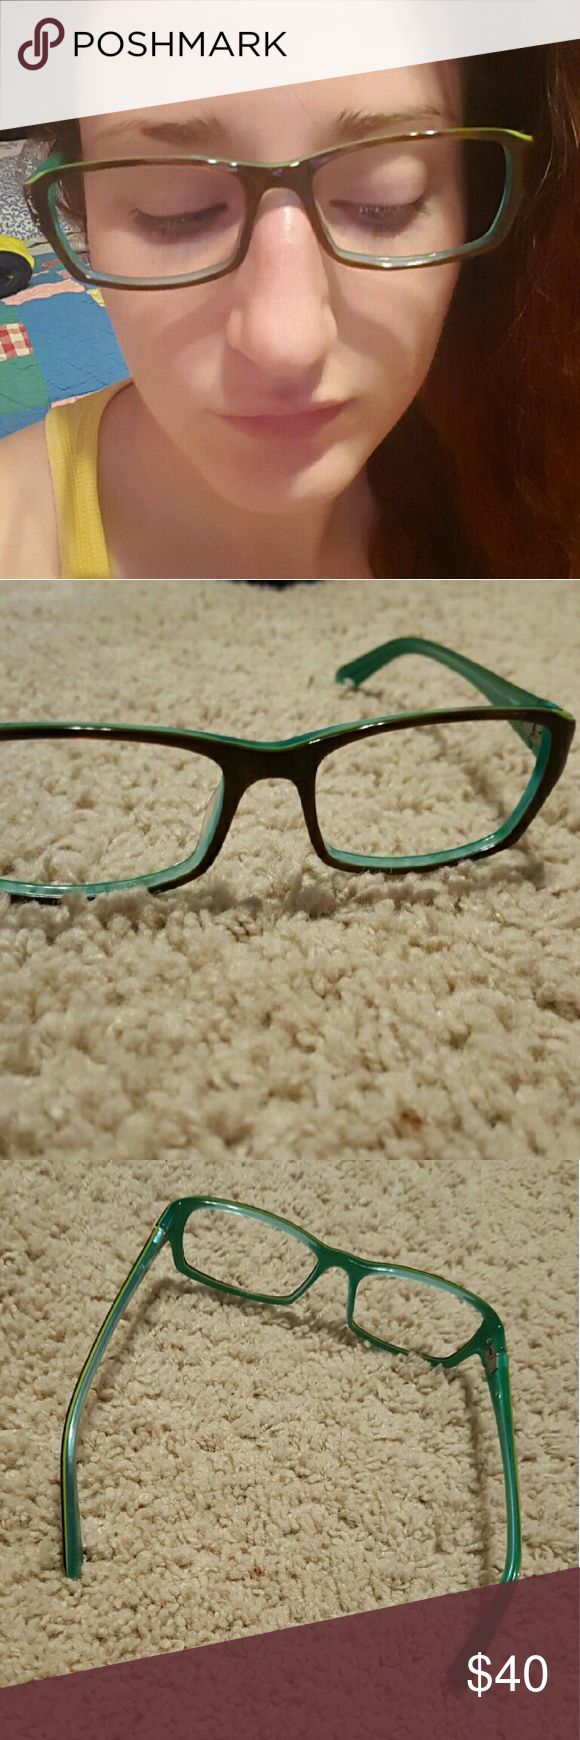 glassed frames prodesign denmark glassed frames ready to put your prescription lenses in they